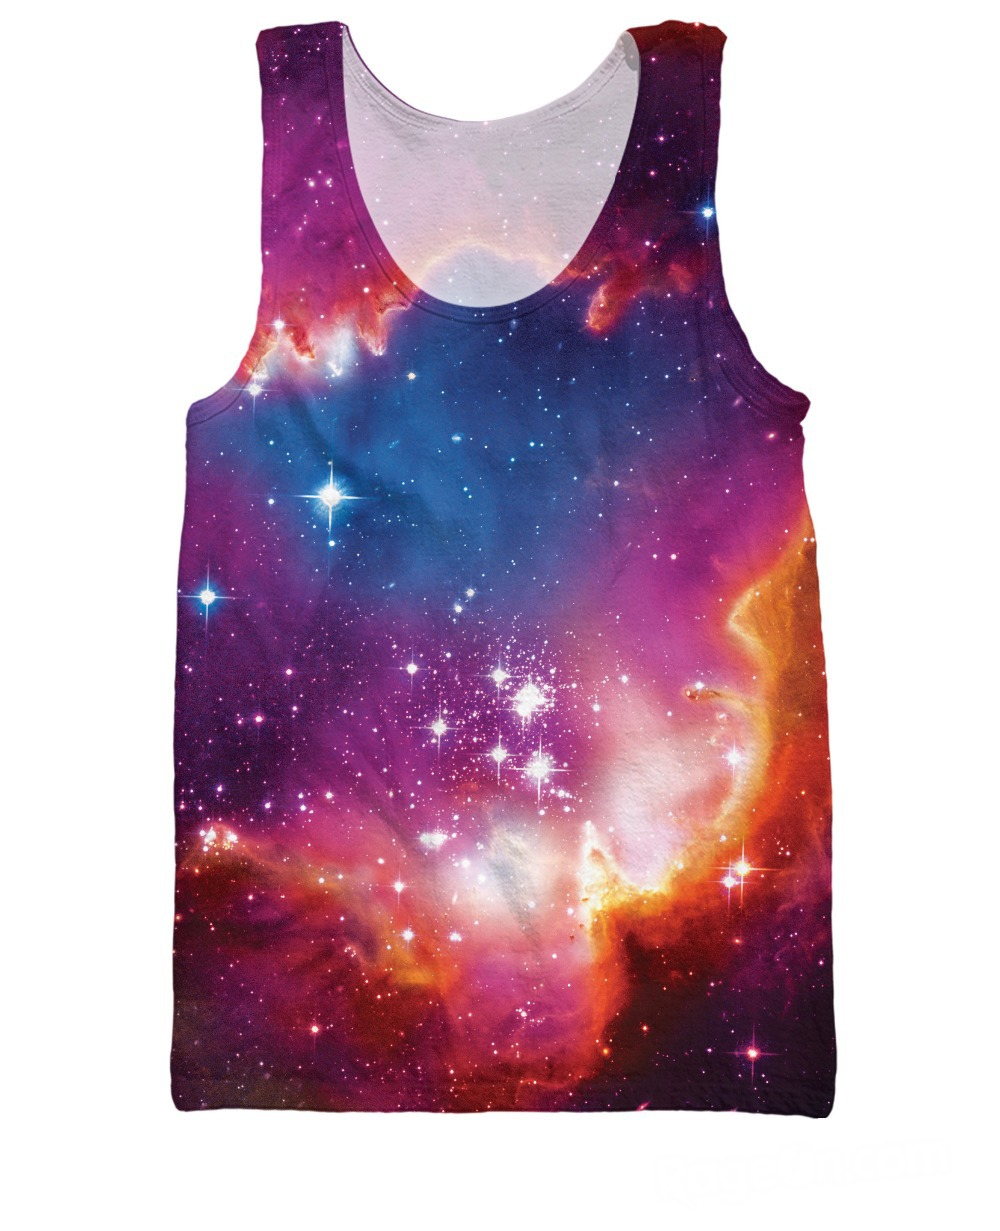 RuiYi free shipping tees jersey Cosmic Forces Tank Top galaxy Stars fashion clothing summer style sexy vest tanks for wome